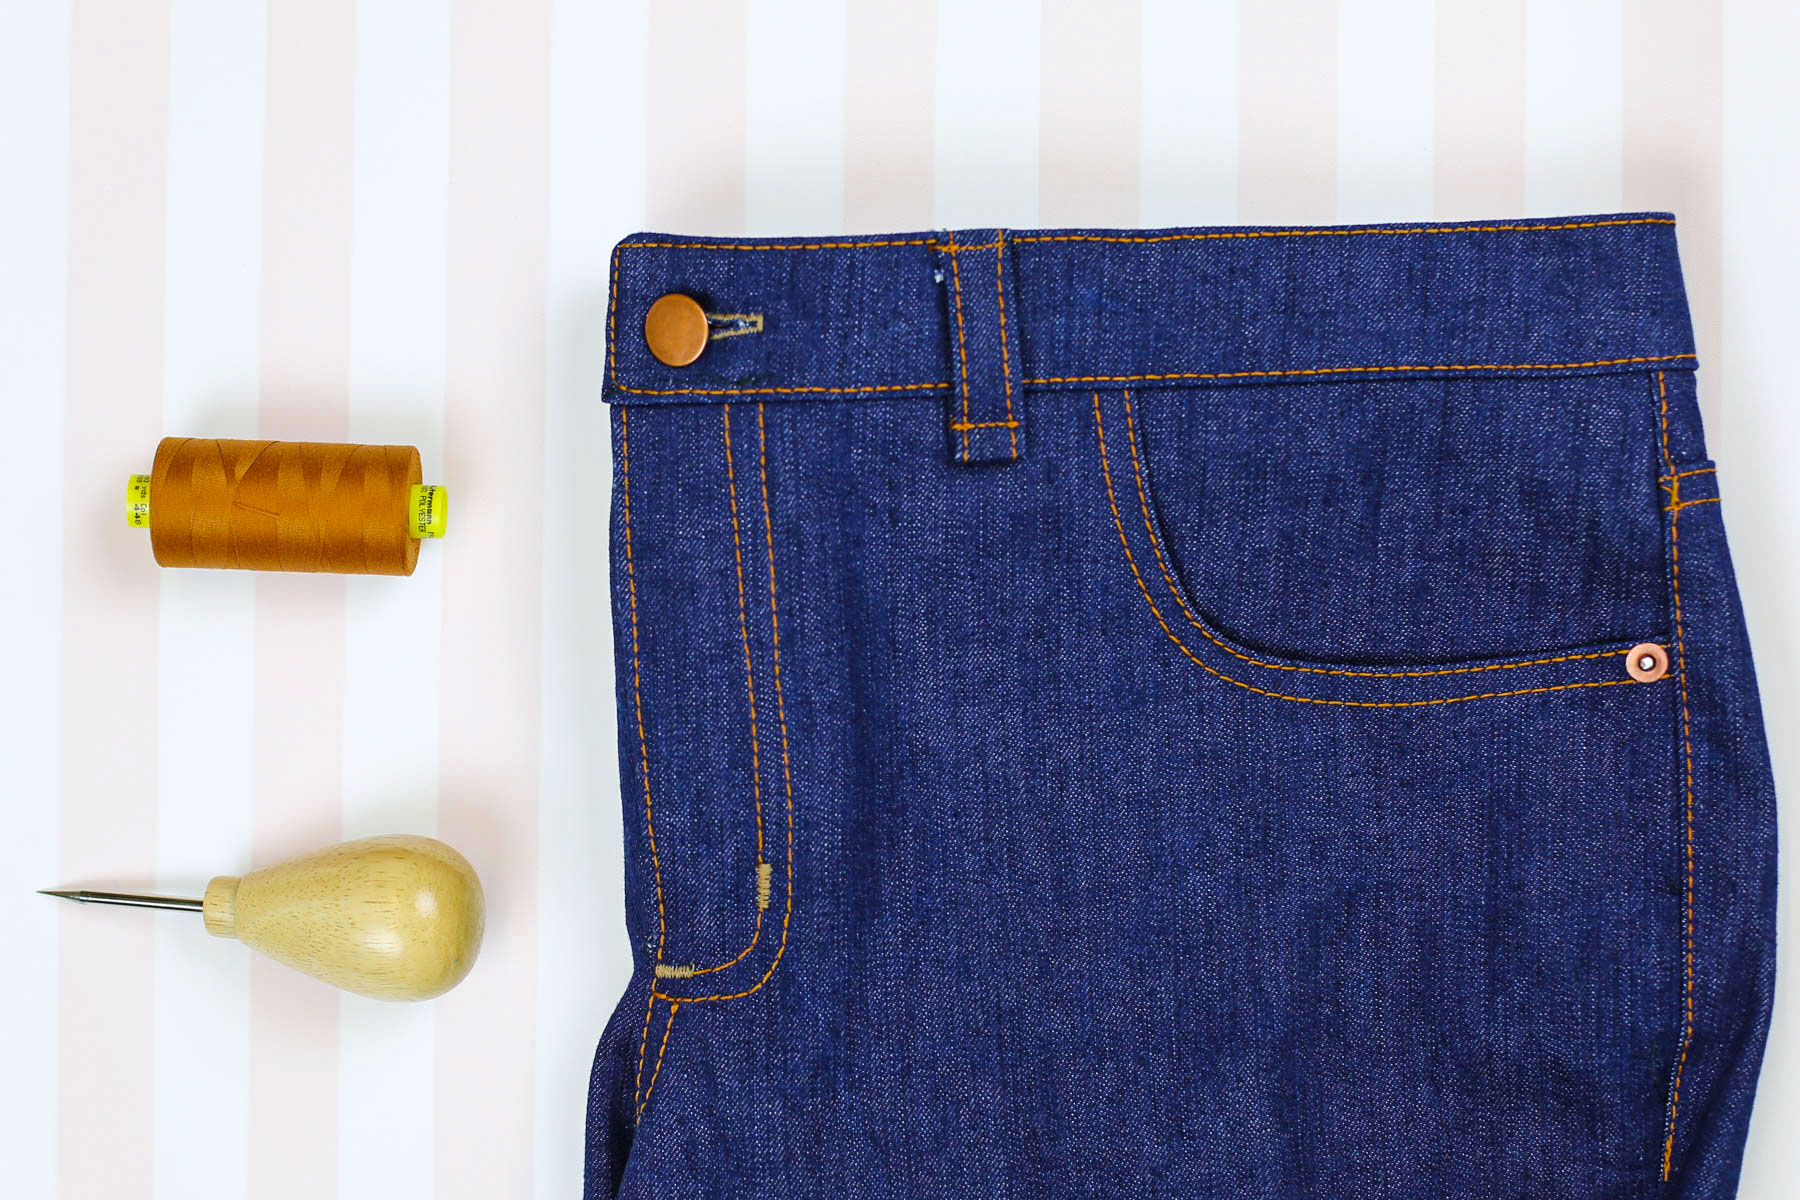 Jeans Sewing Supplies And Notions: Get Ready To Make Your